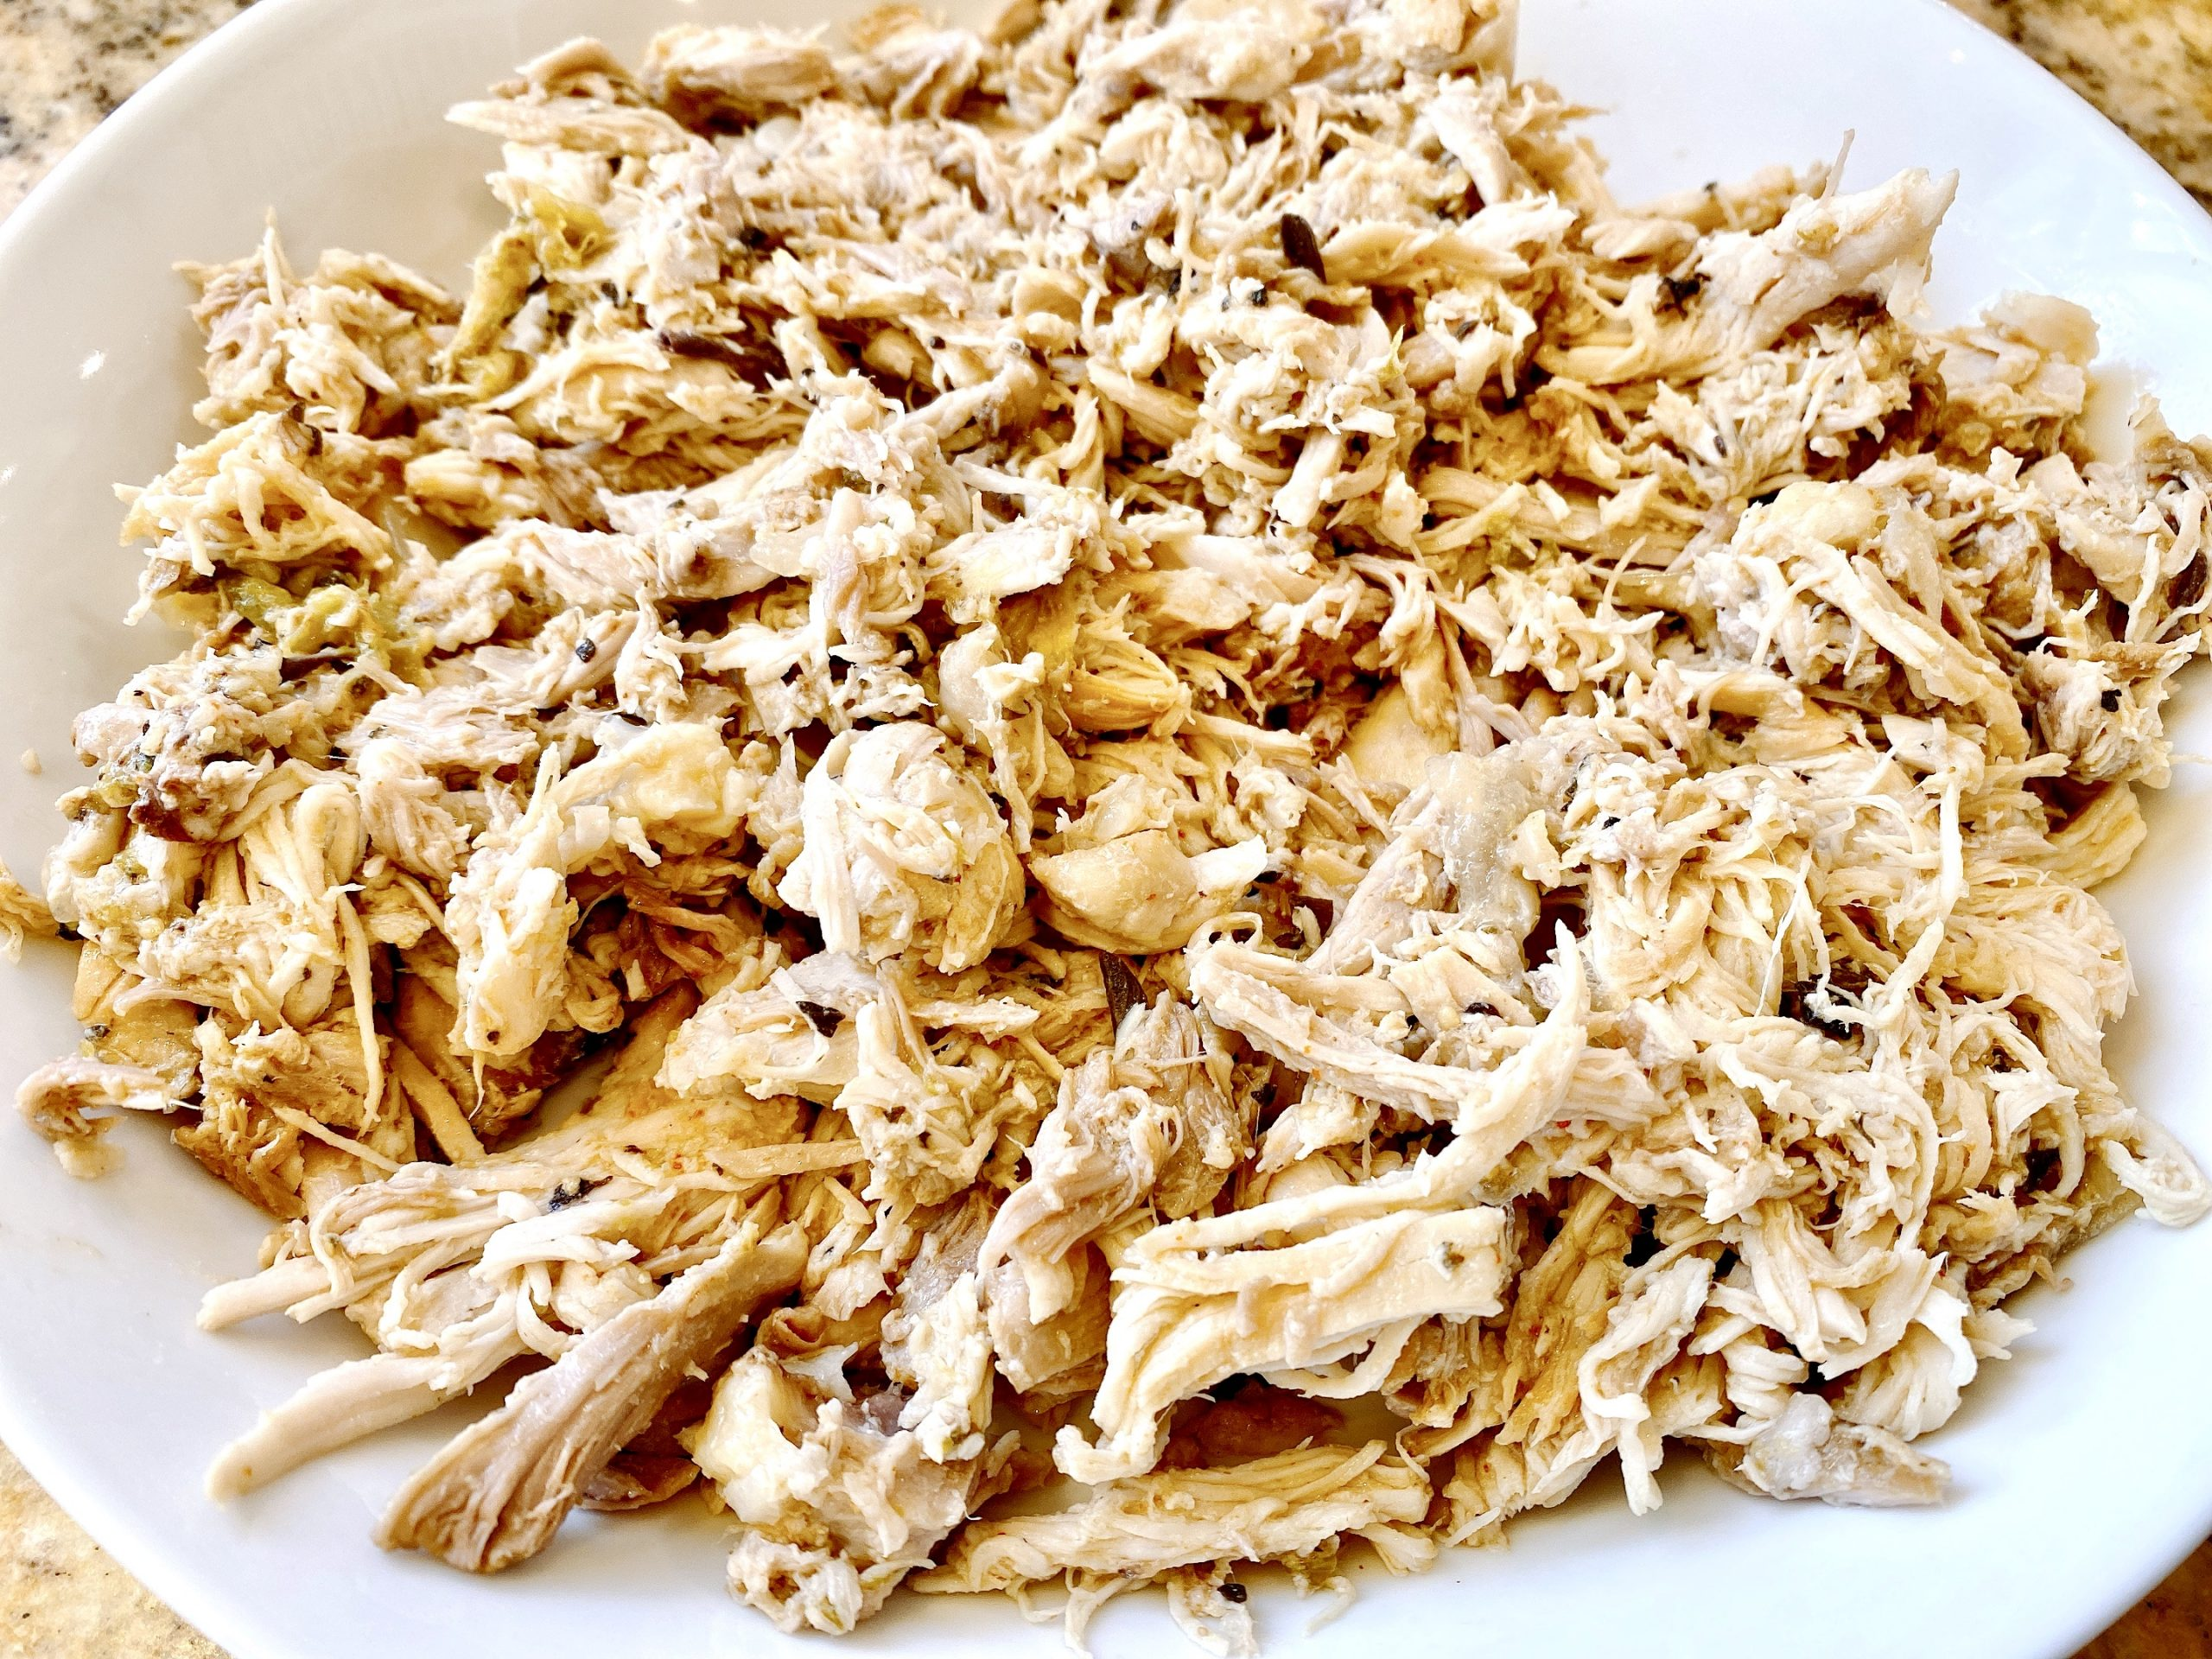 Shredded chicken thighs by Perdue Farms